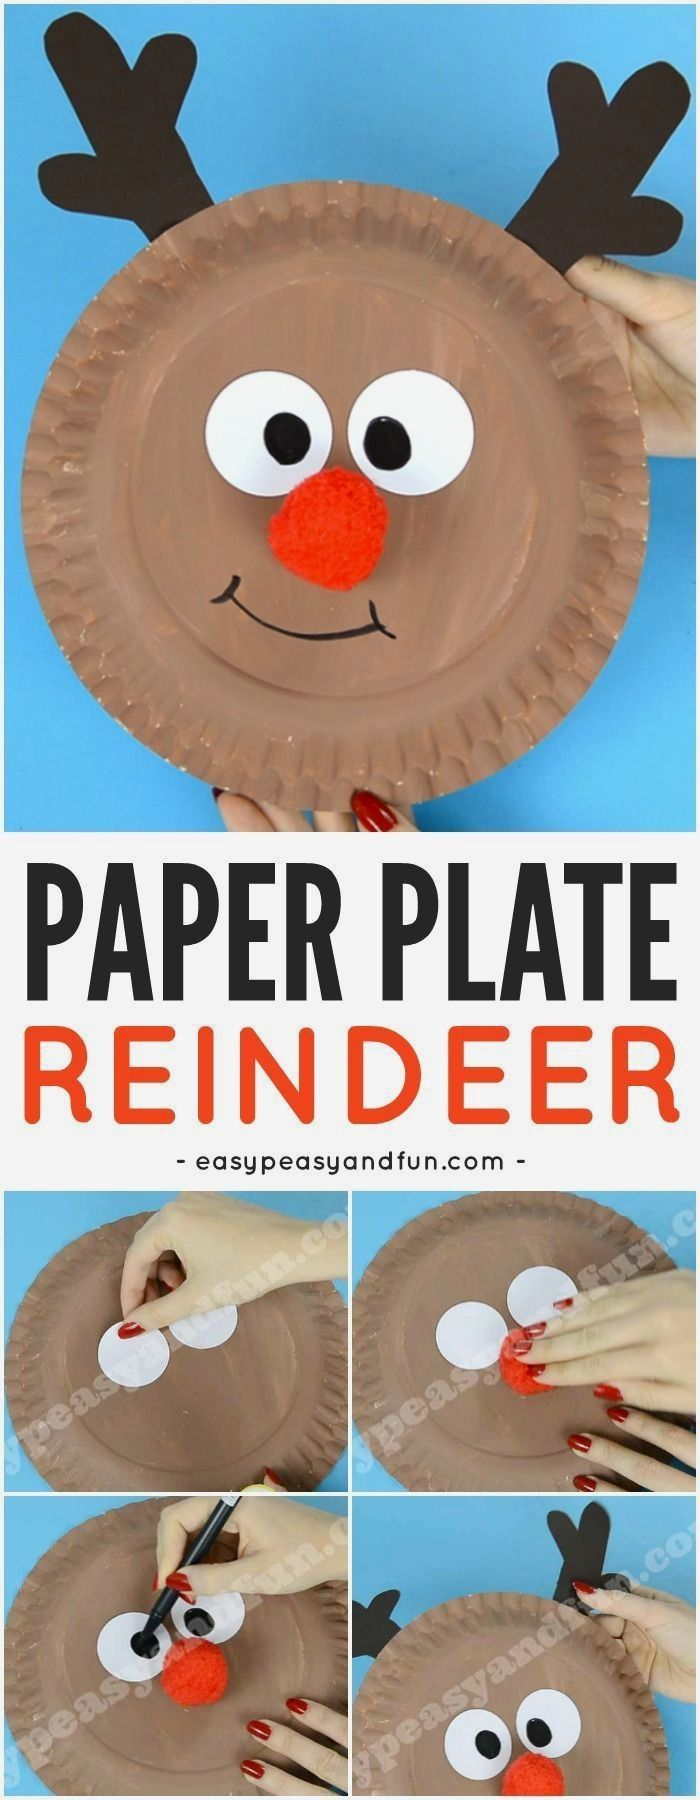 Reindeer Paper Plate Craft with a Cute Pink Nostril